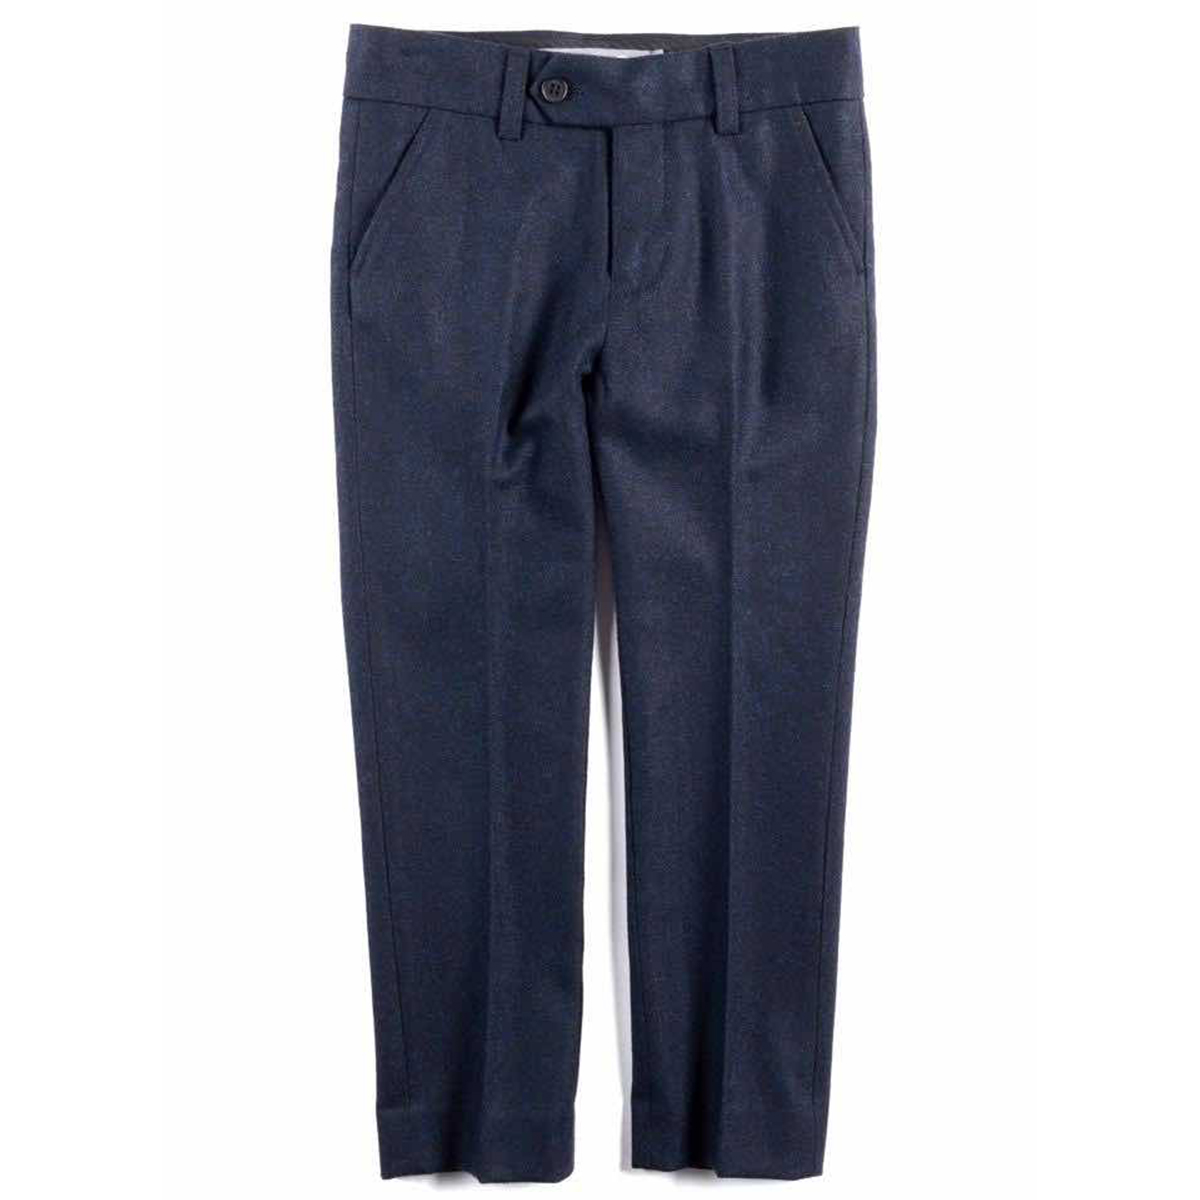 Appaman Tailored Wool Navy Pant